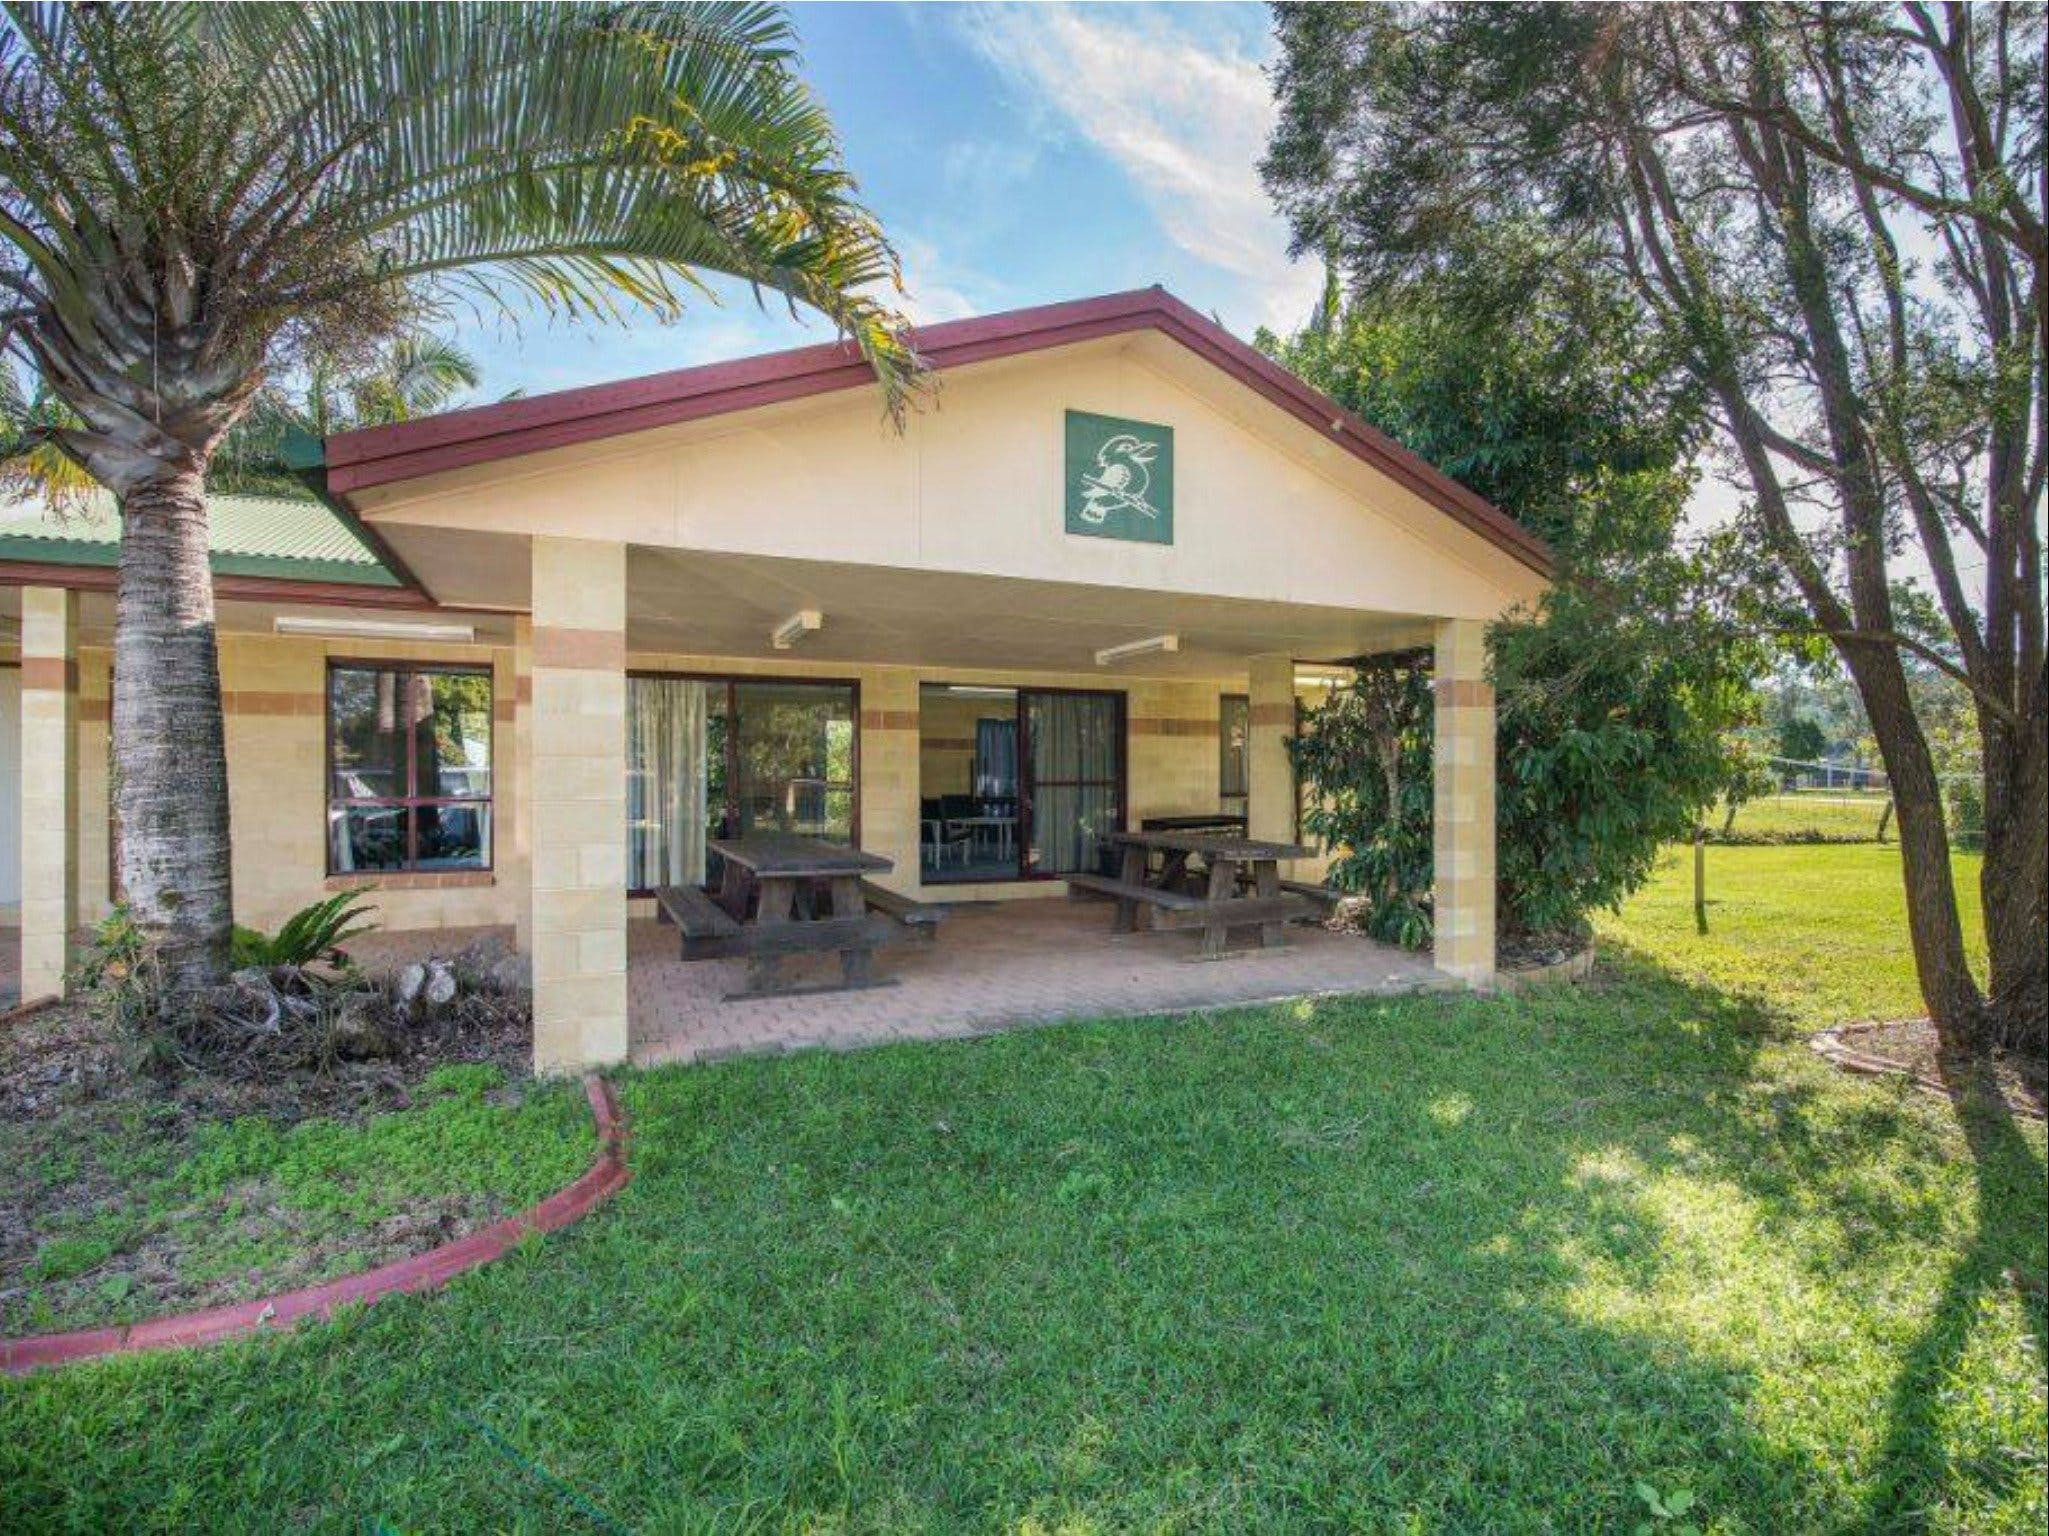 Mooyabil Farm Holidays - Accommodation Brisbane